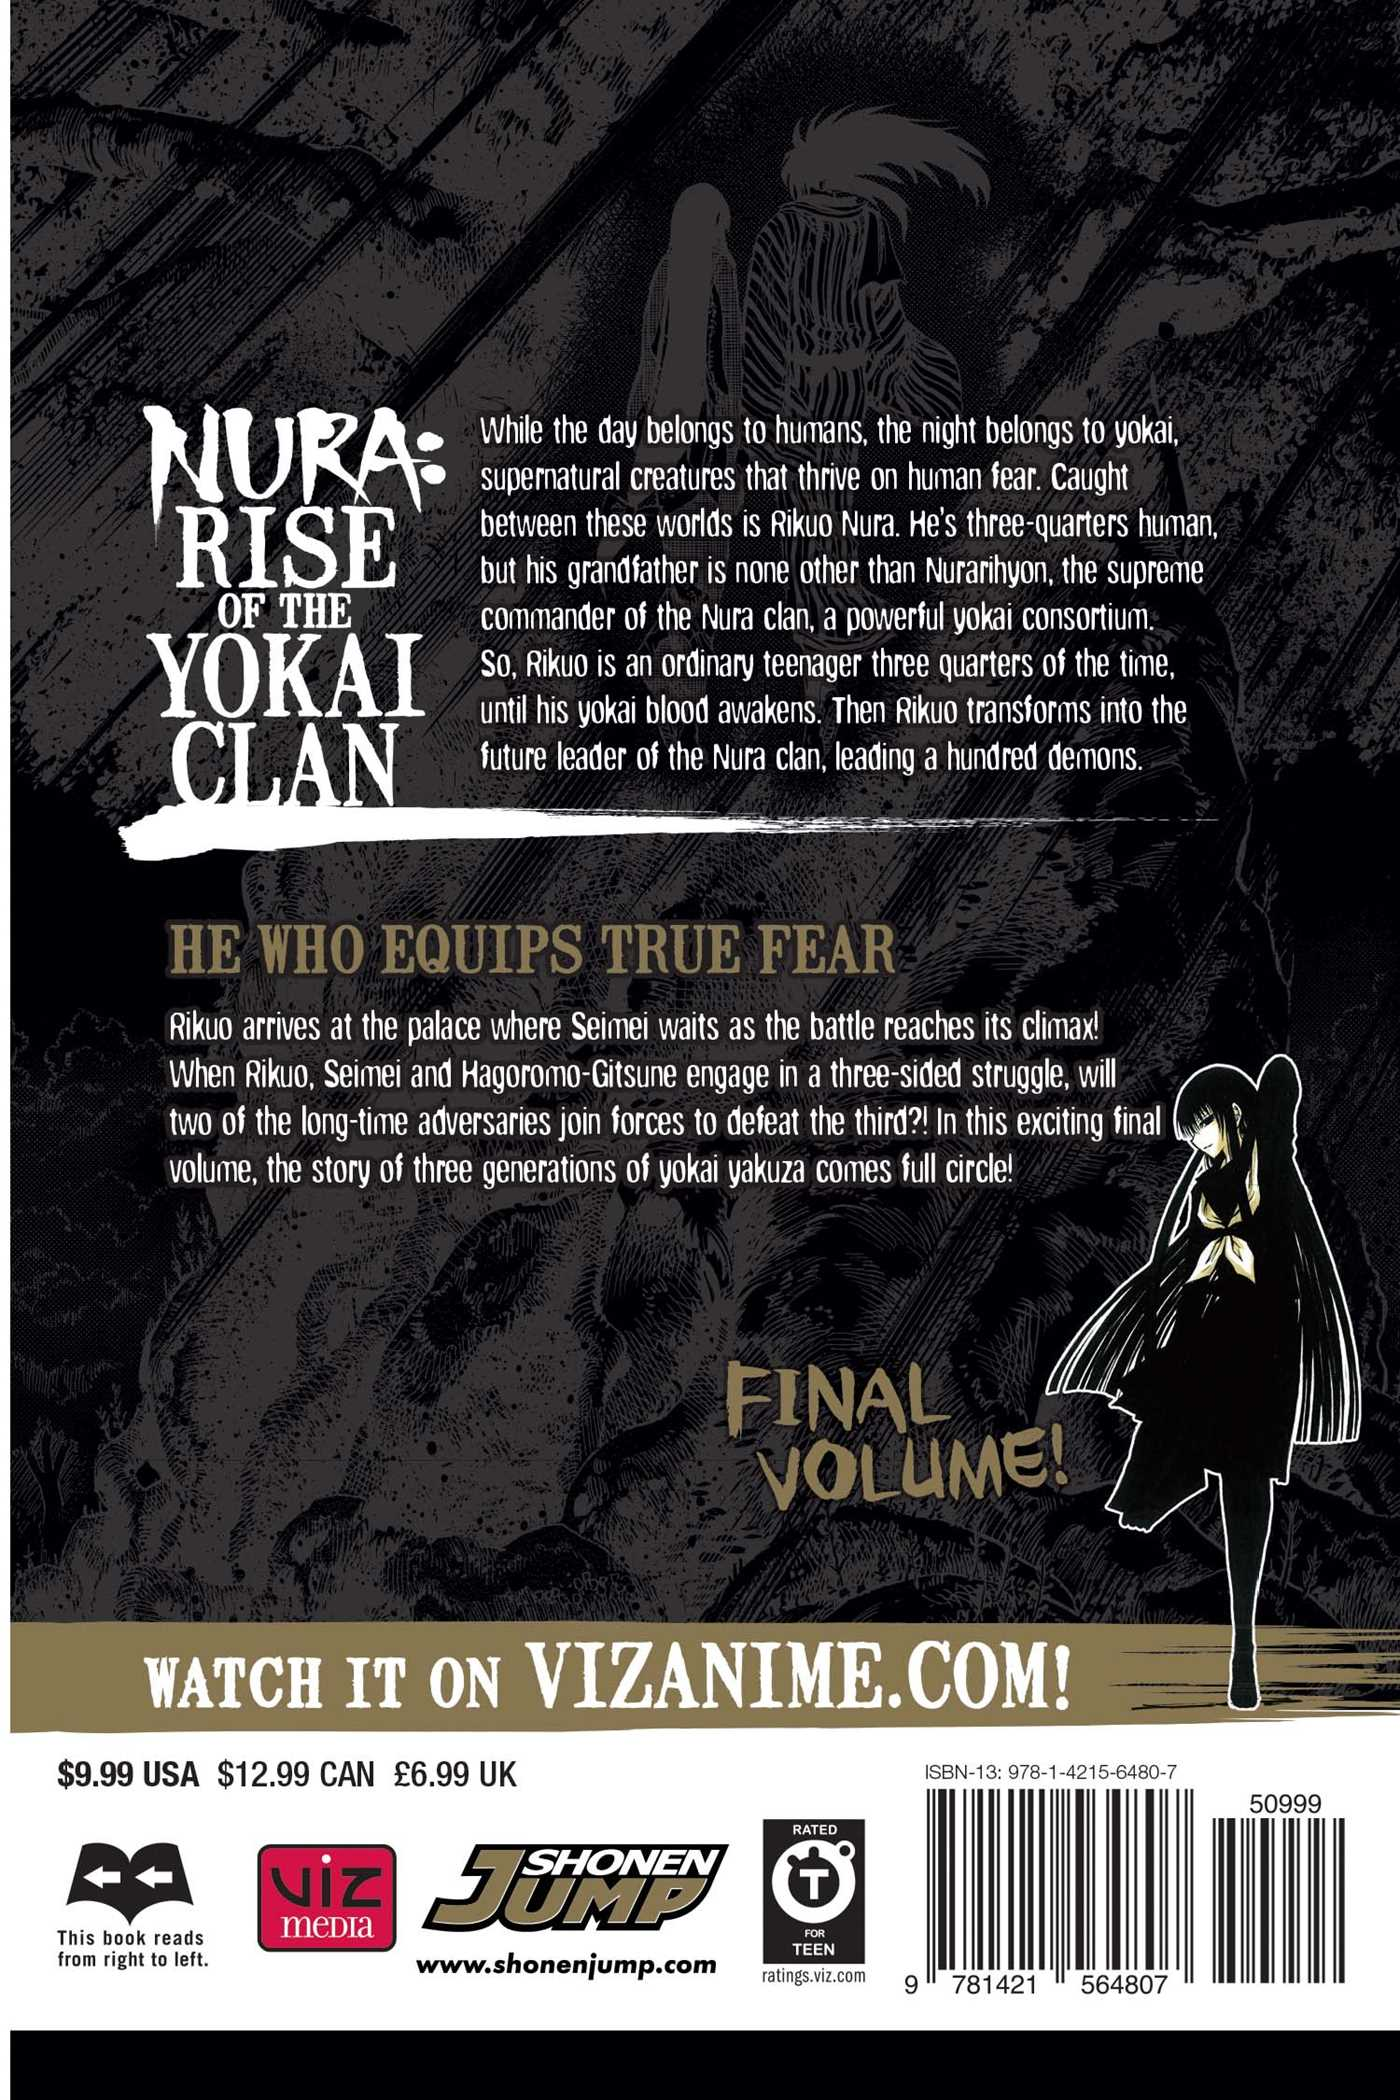 Nura rise of the yokai clan vol 25 9781421564807 hr back